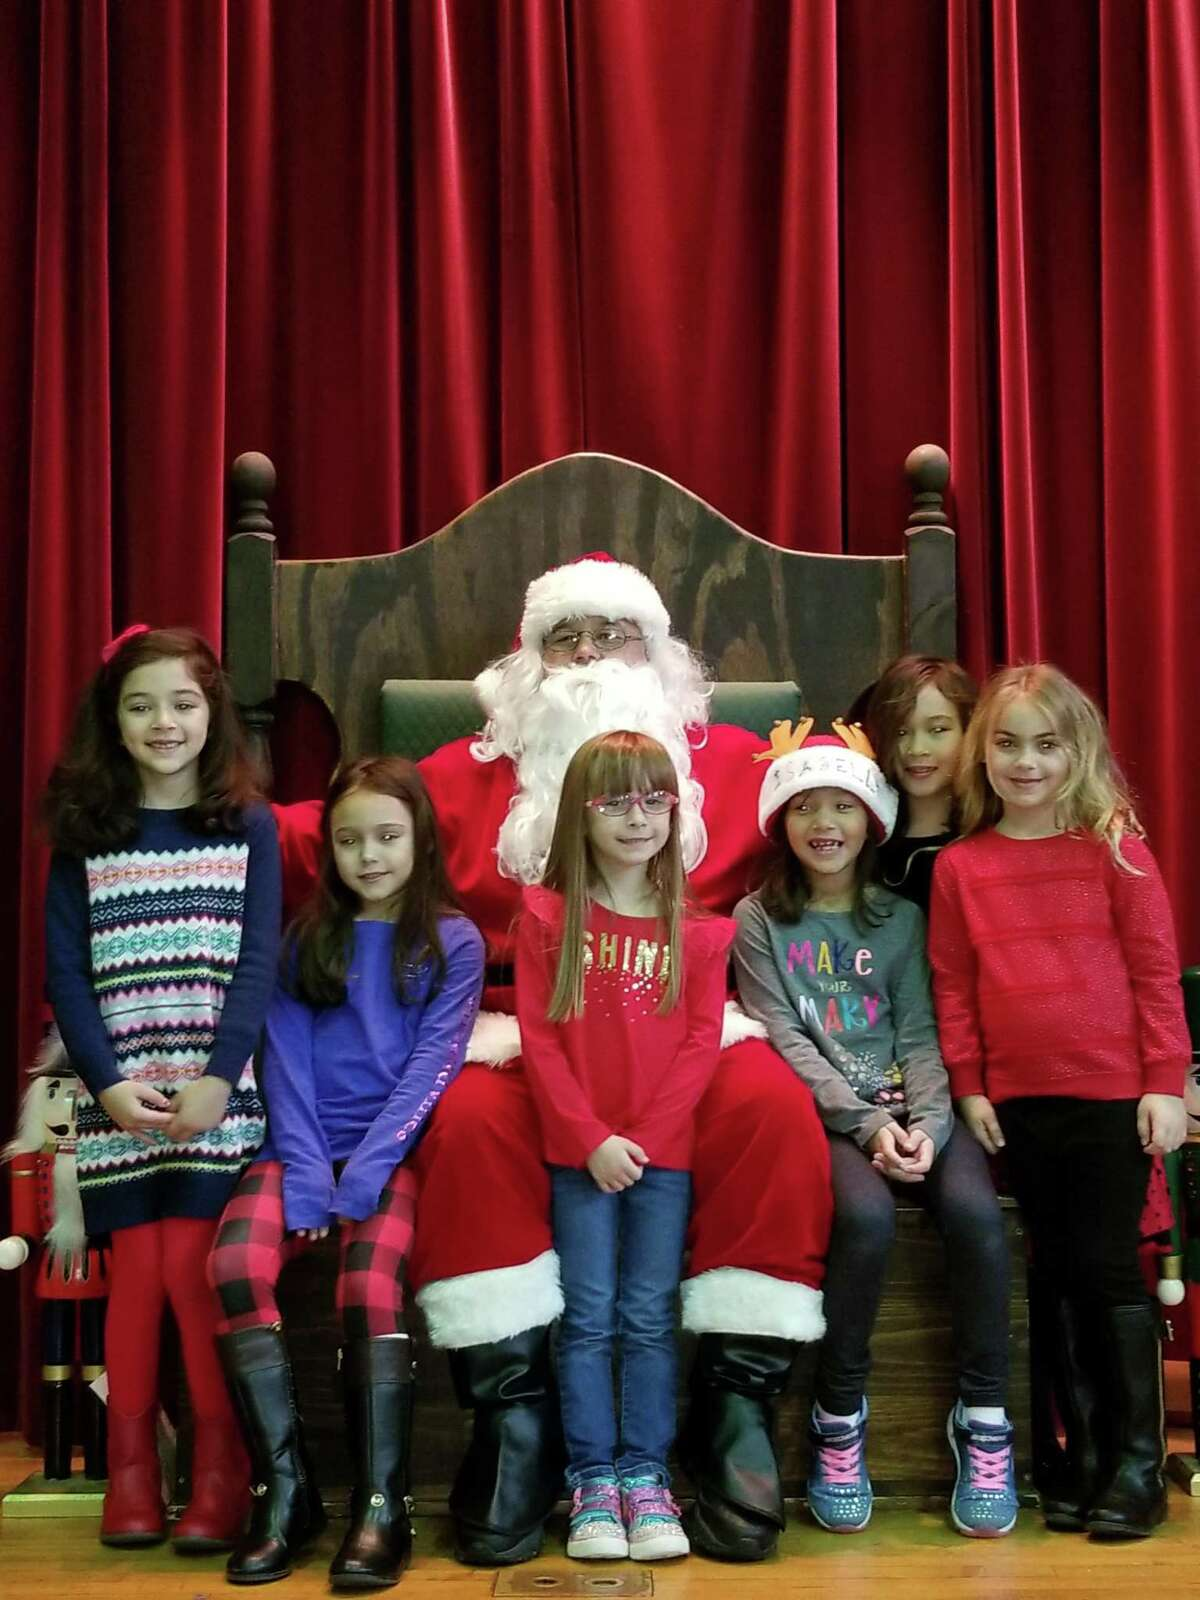 St. Mary School, 72 Gulf St. will host a Breakfast with Santa on Sunday, Dec. 8, from 7:30-11:30 a.m.